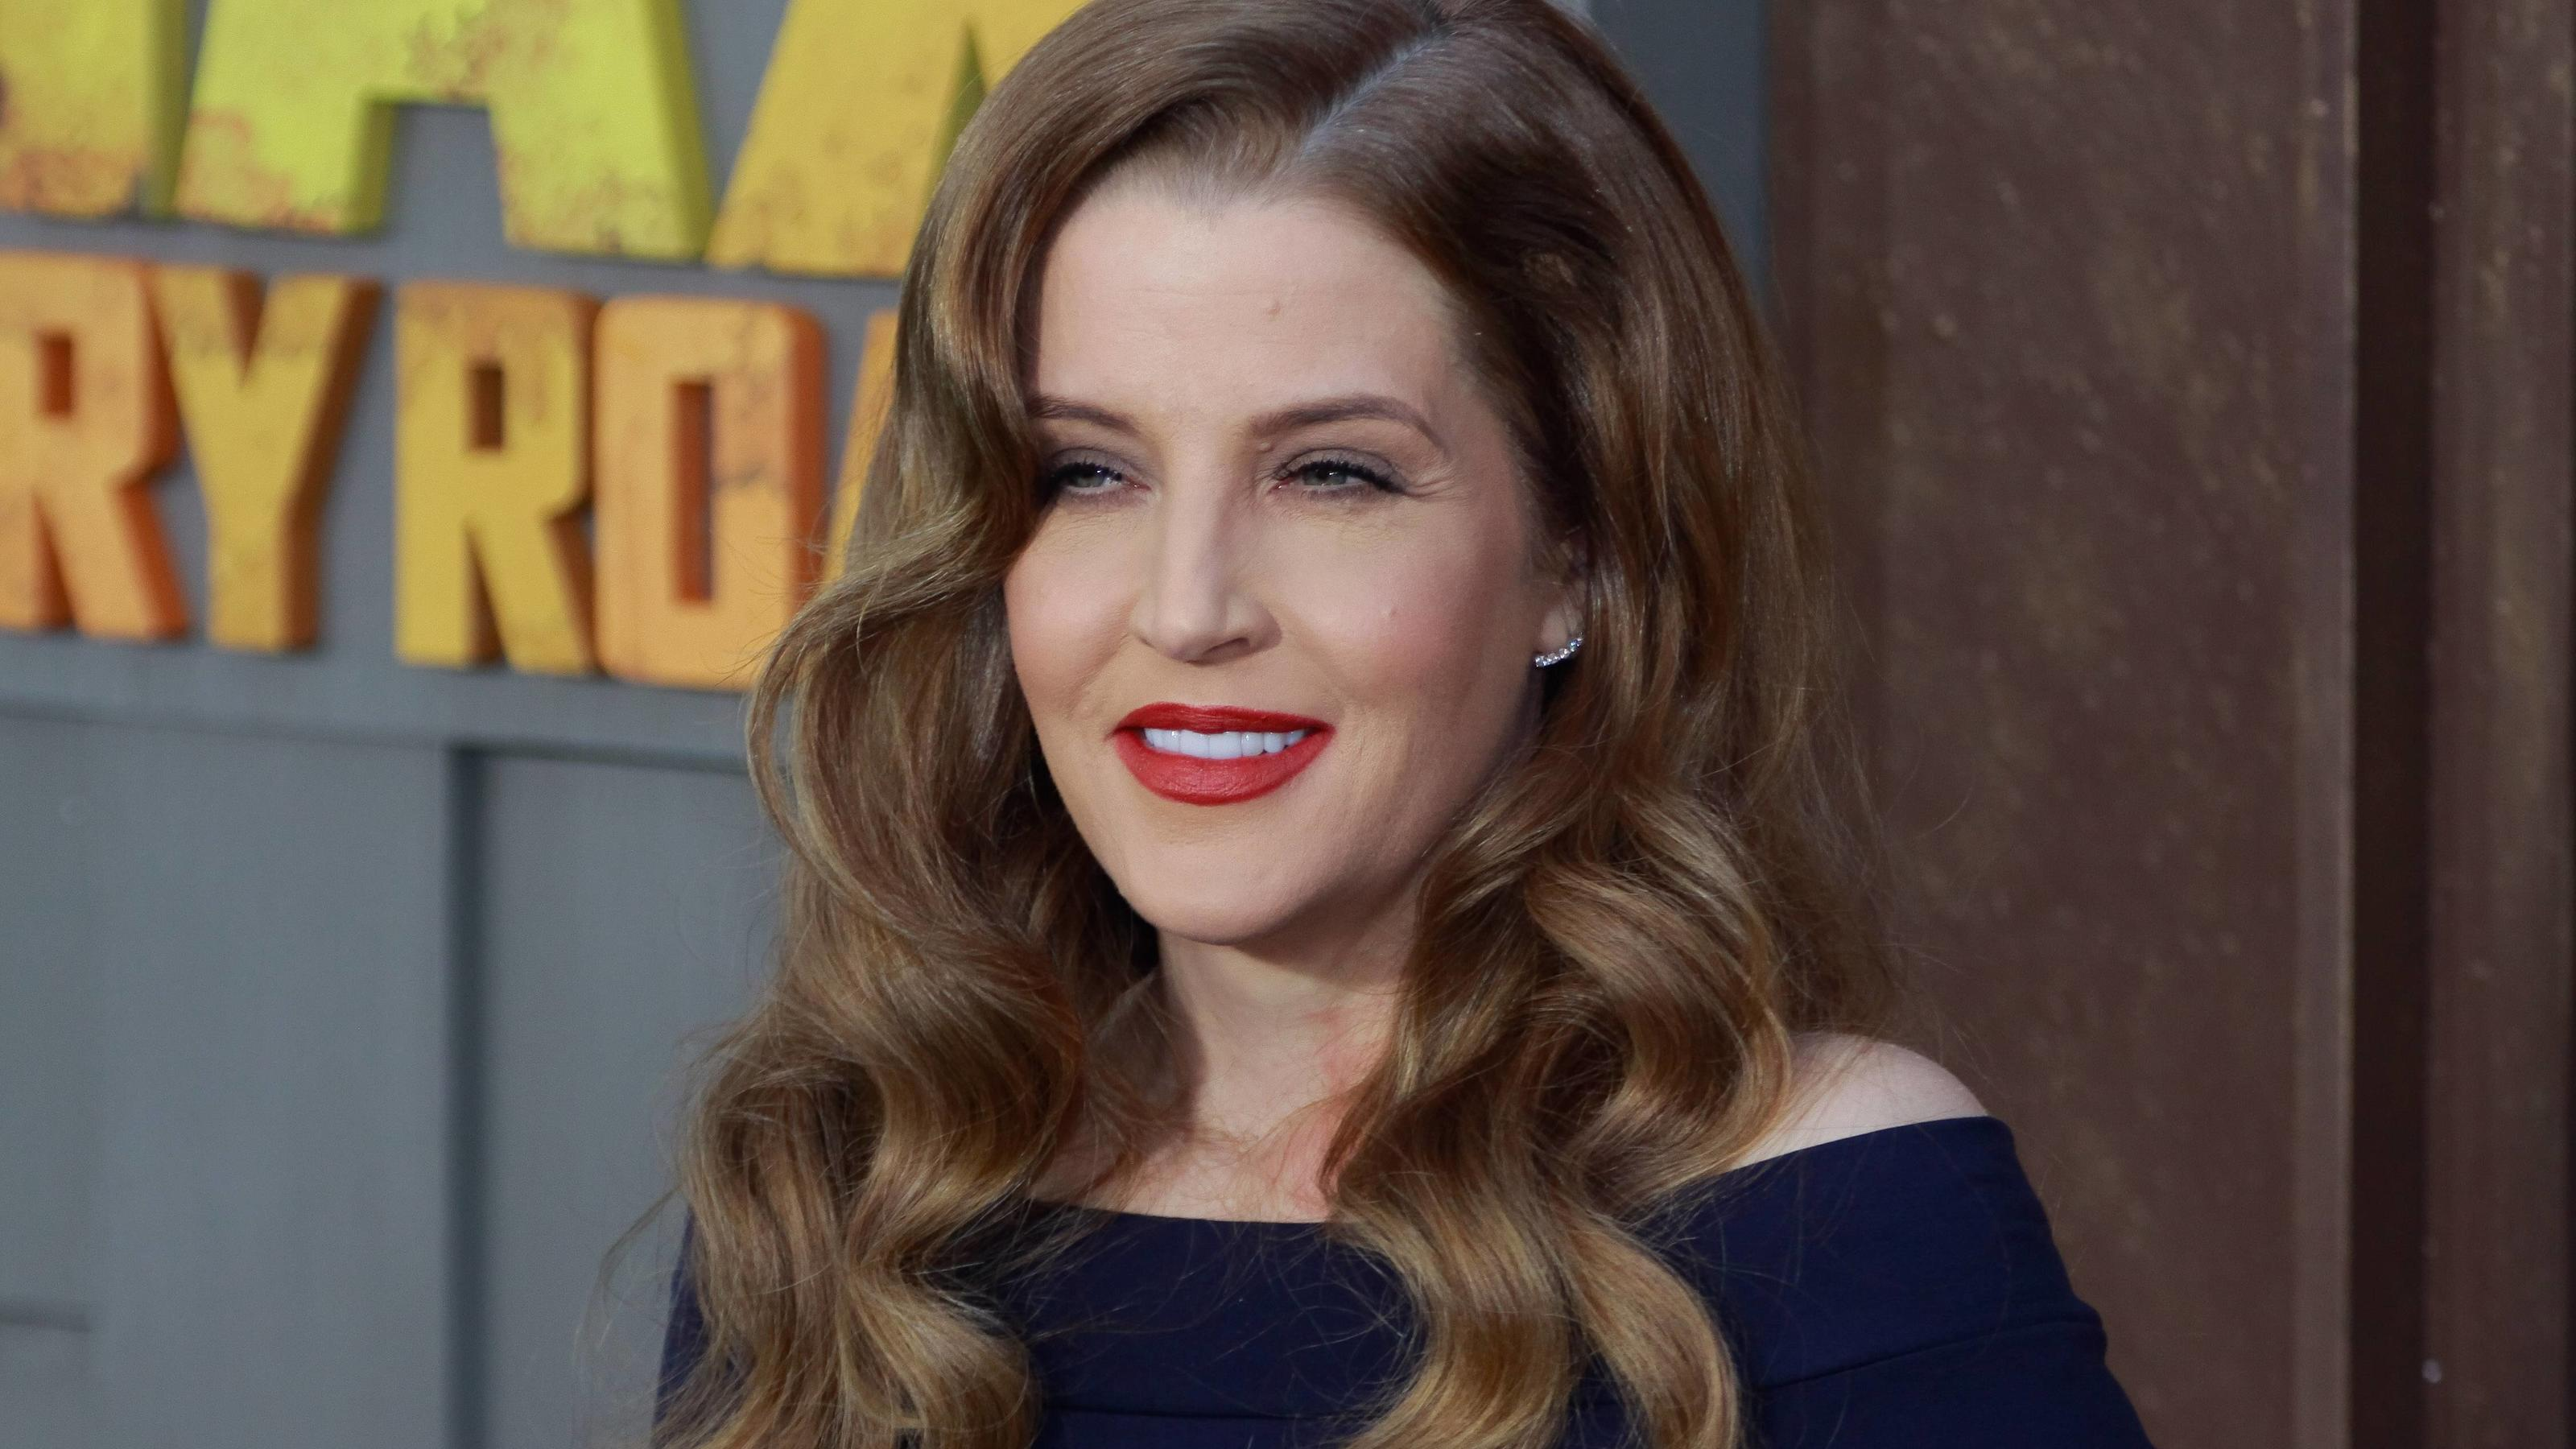 Lisa Marie Presley at the Premiere of Warner Bros. Pictures Mad Max: Fury Road held at the TCL Chinese Theater in Hollywood, CA, May 7, 2015. PUBLICATIONxINxGERxSUIxAUTxONLY Copyright: xJoexMartinezx 32623_027JM